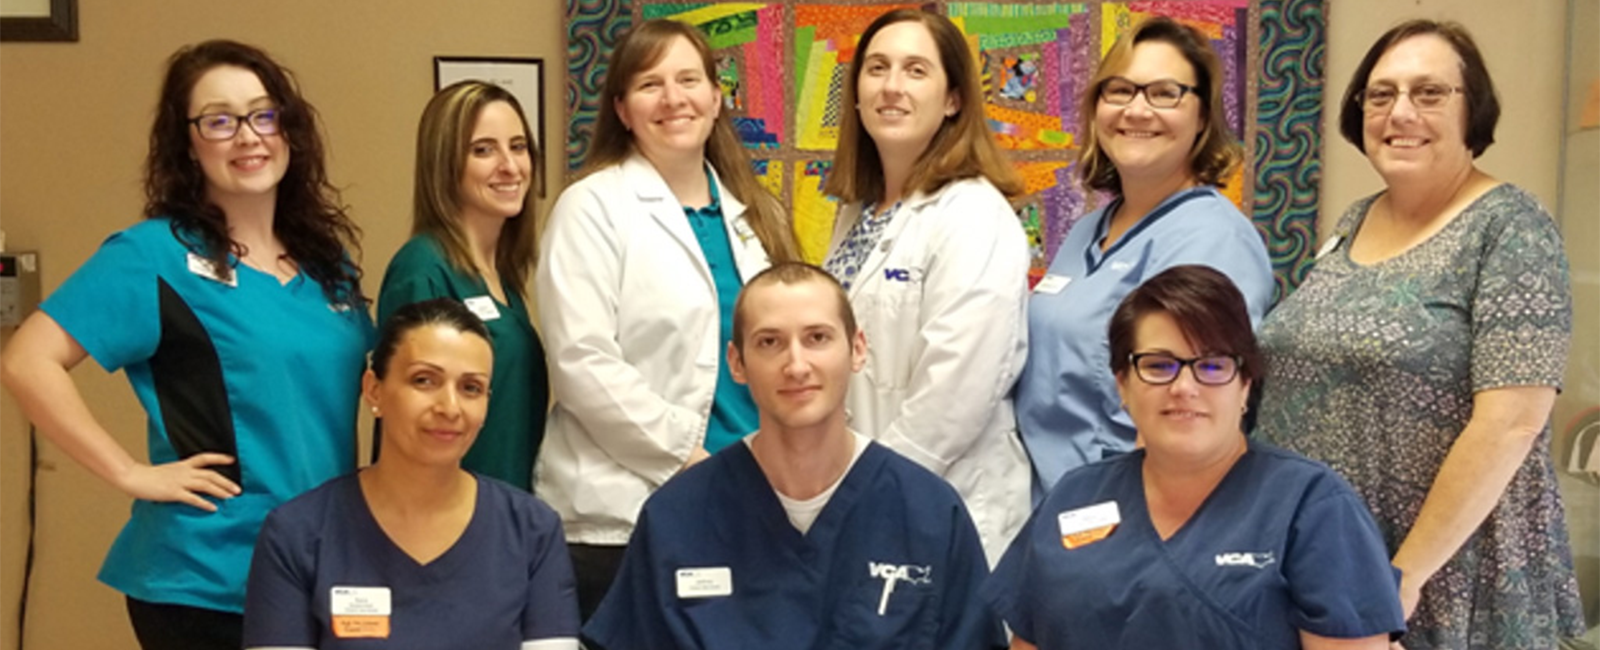 Homepage Team Picture of VCA Greenback Animal Hospital